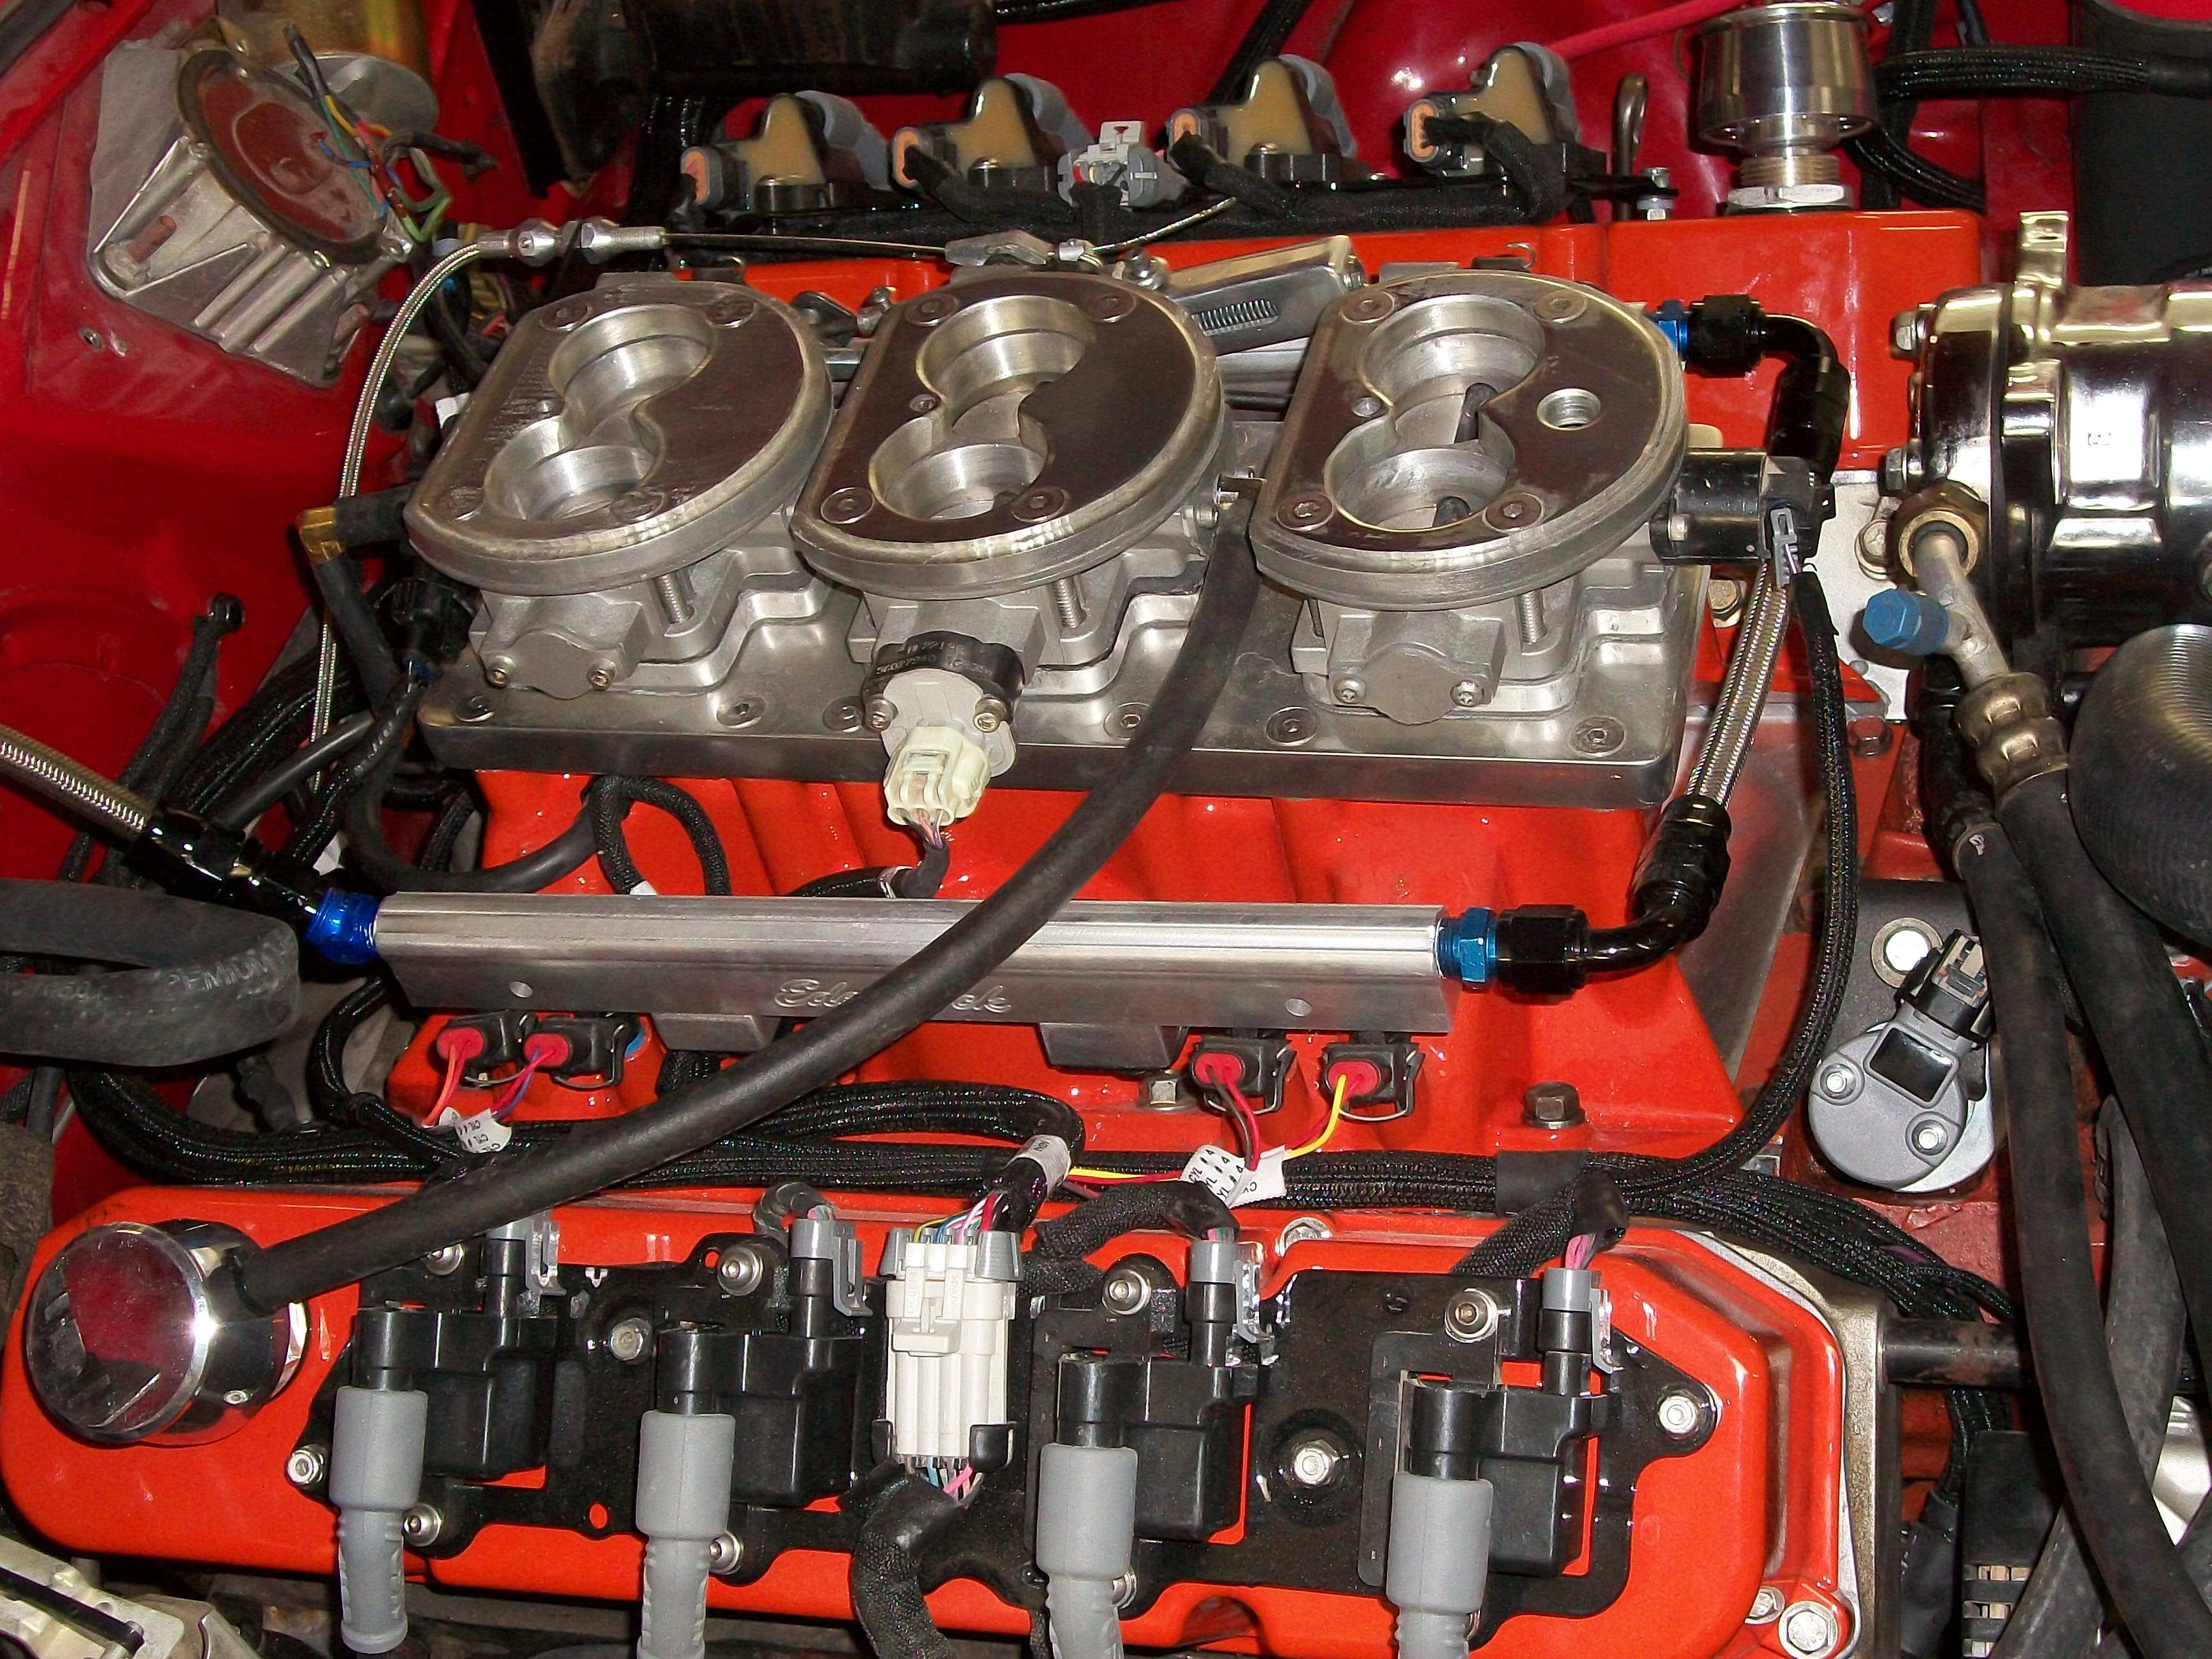 Cool Mopar 496 big block with CNP